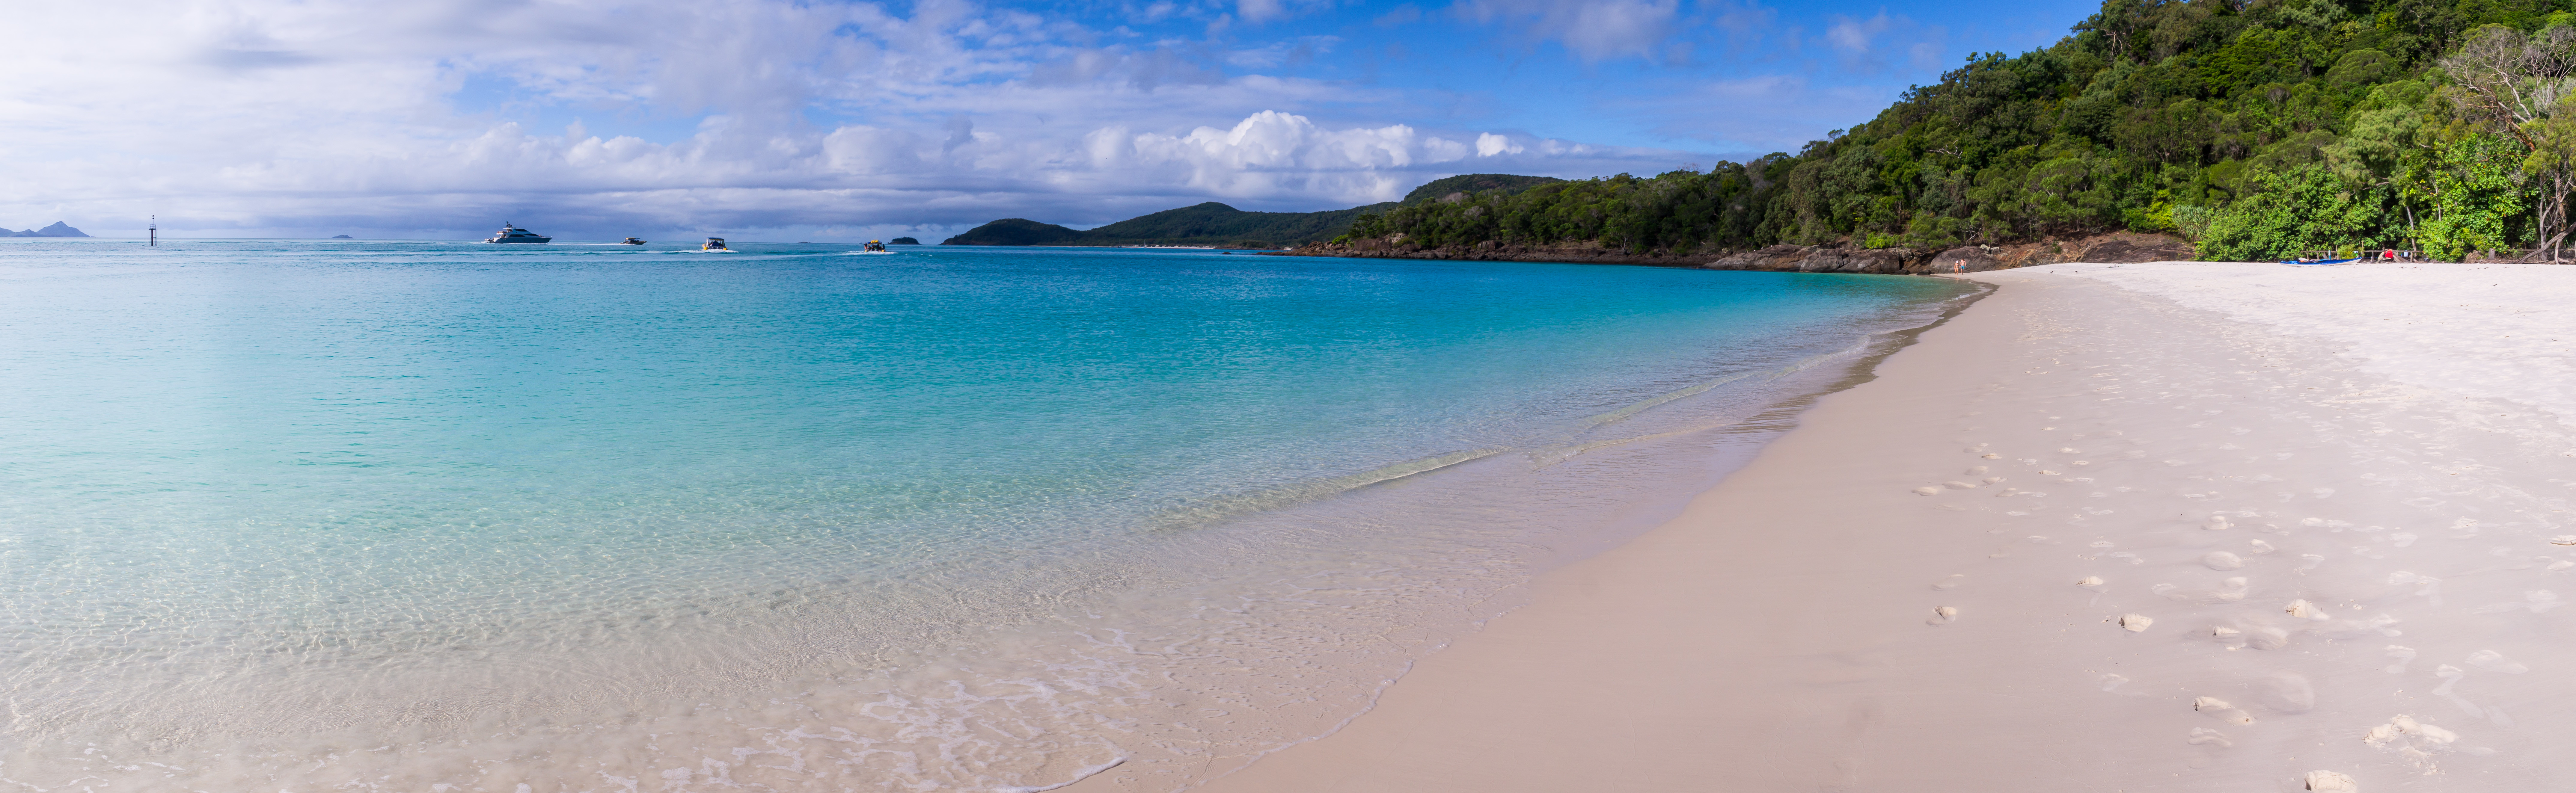 Panorama of Whitehaven beach at Whitsunday Island in Queensland, Australia. Whitehaven beach is a well known landmark known for its beautiful white sand and clear waters